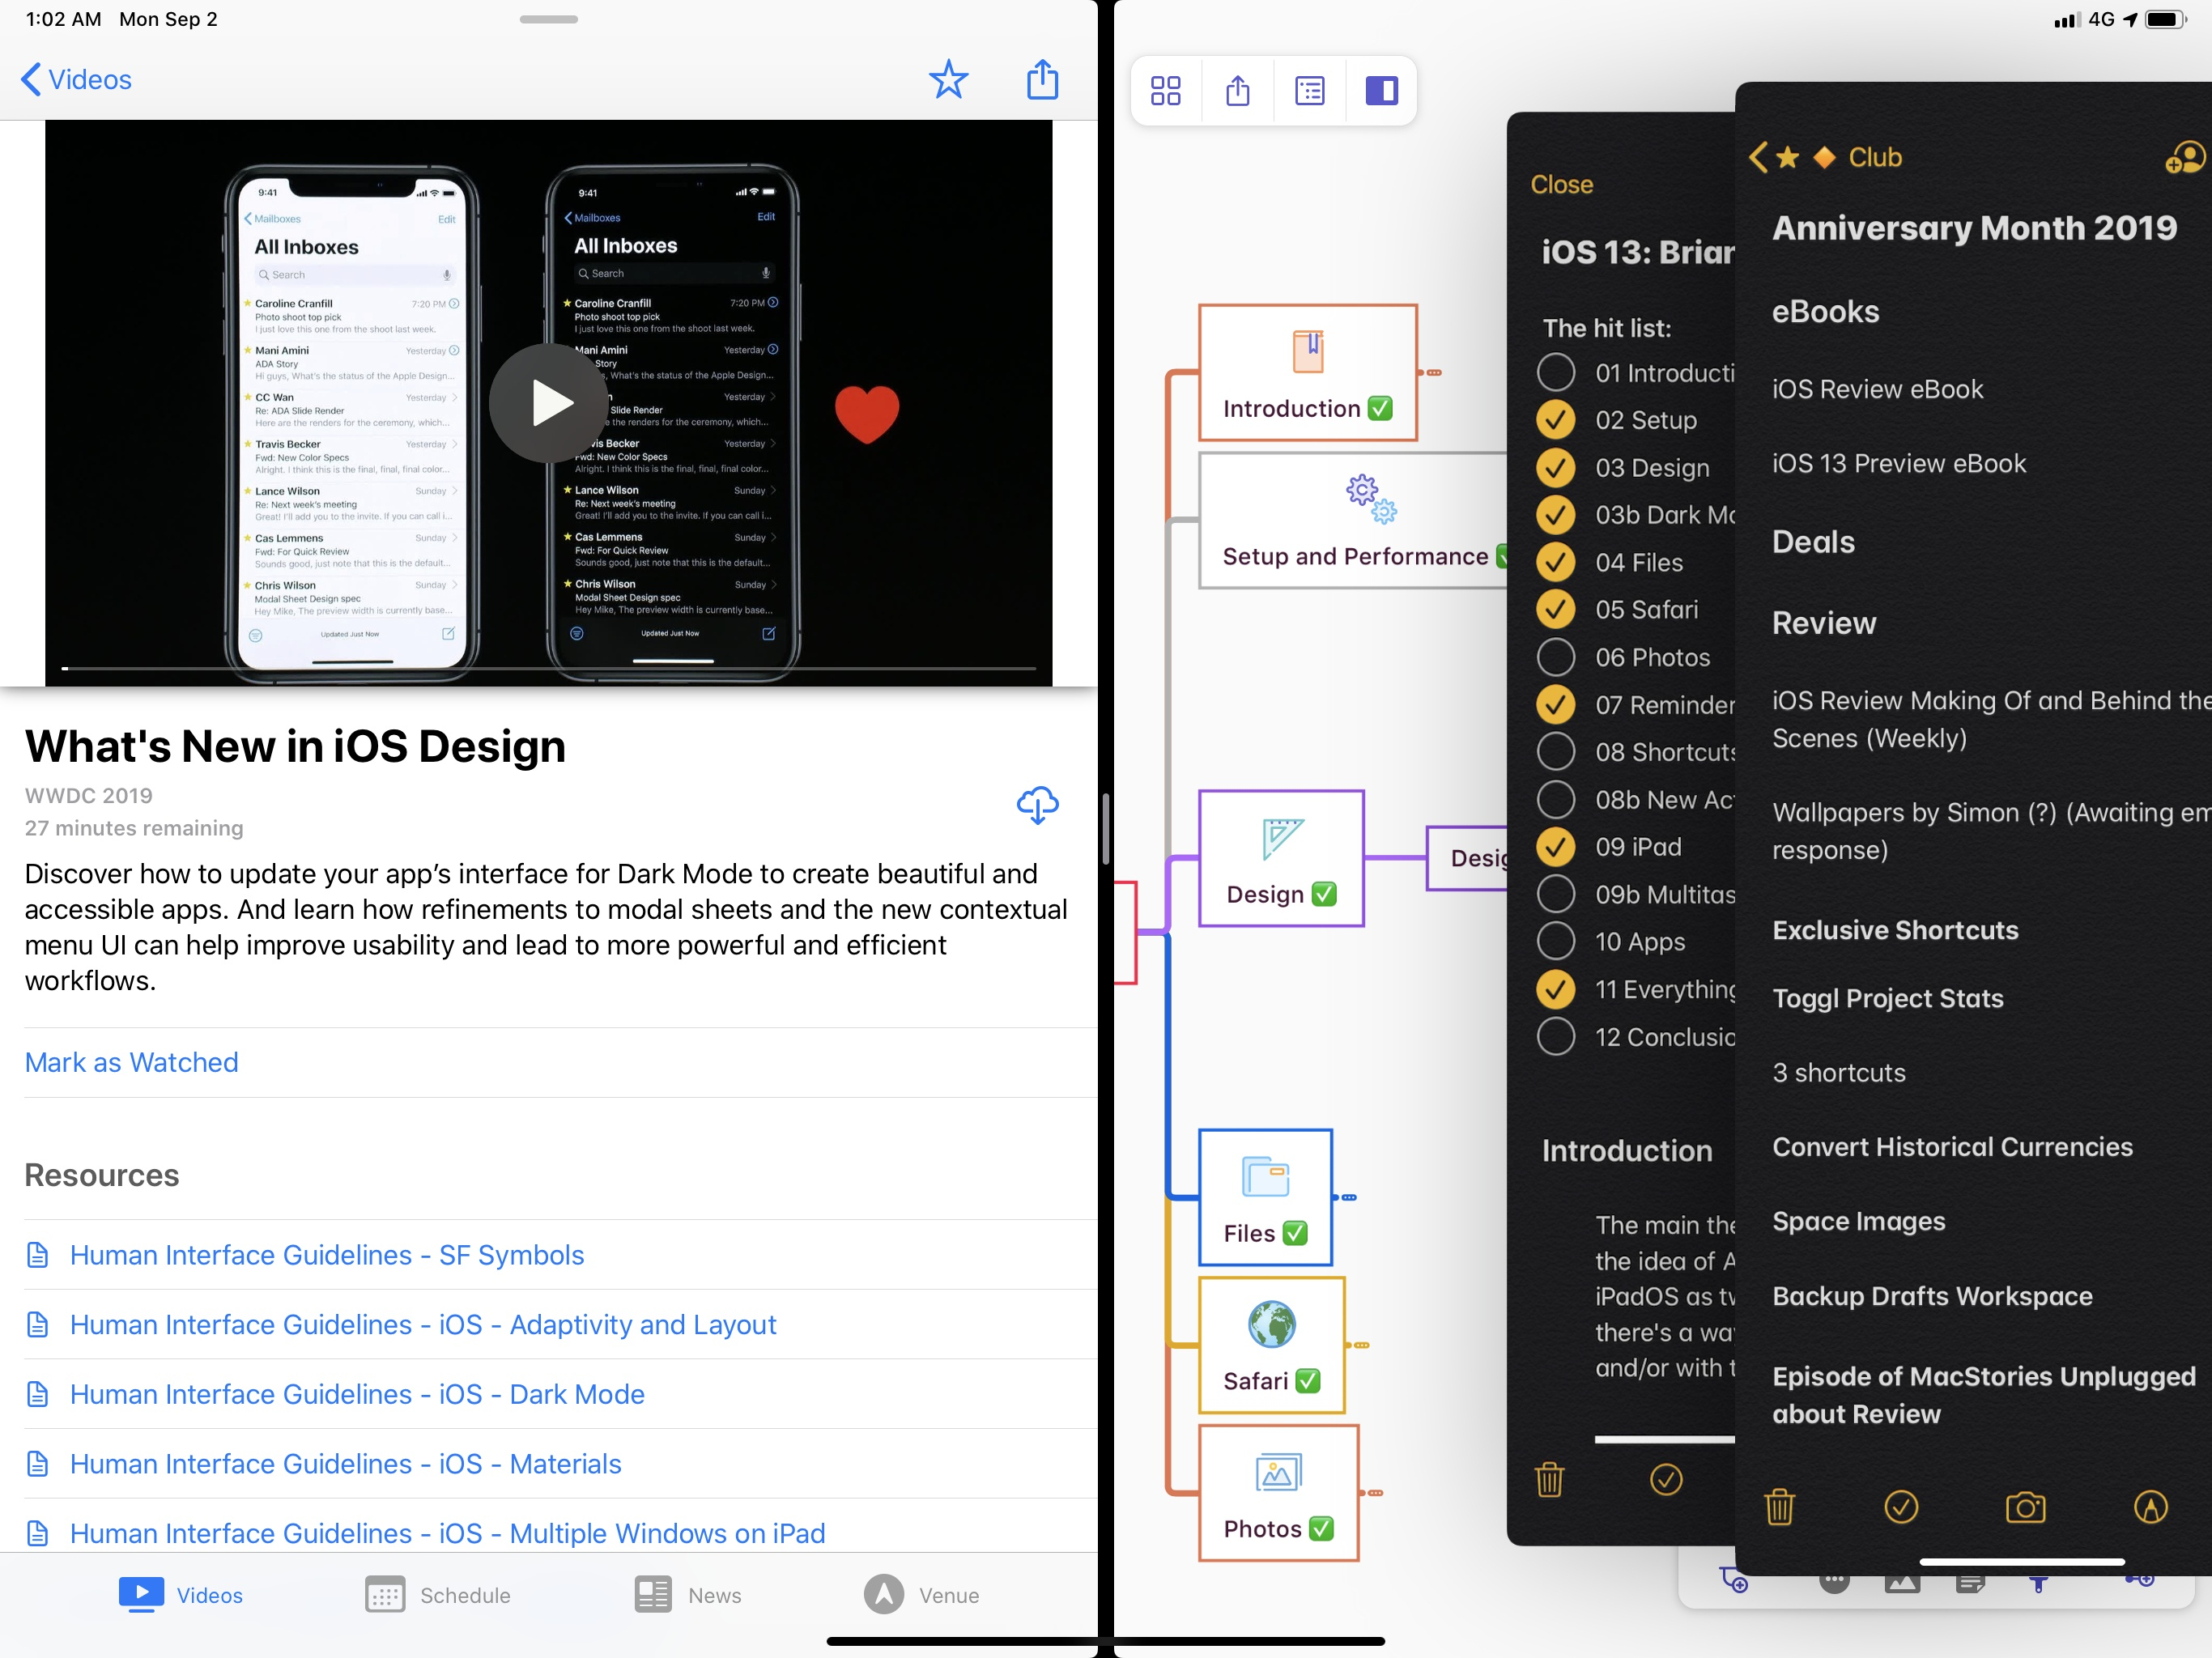 My typical research setup in iPadOS 13: watching a video, working on a mind map, and flipping between multiple Notes windows in Slide Over.